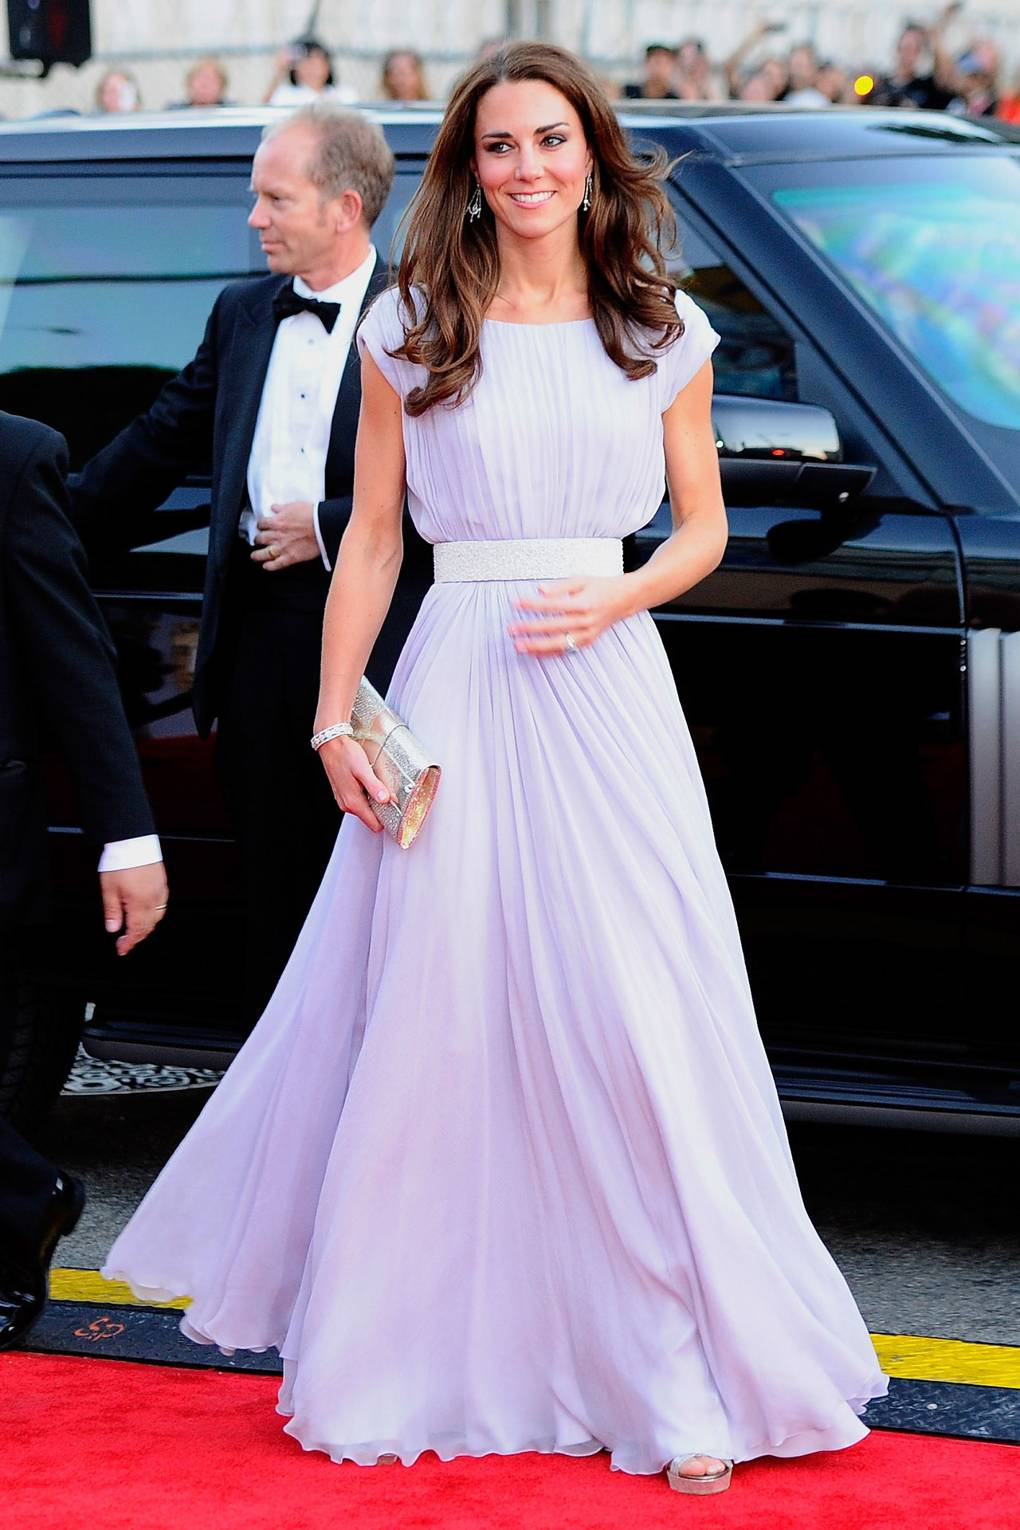 The best of the Duchess of Cambridge's Royal Tour looks